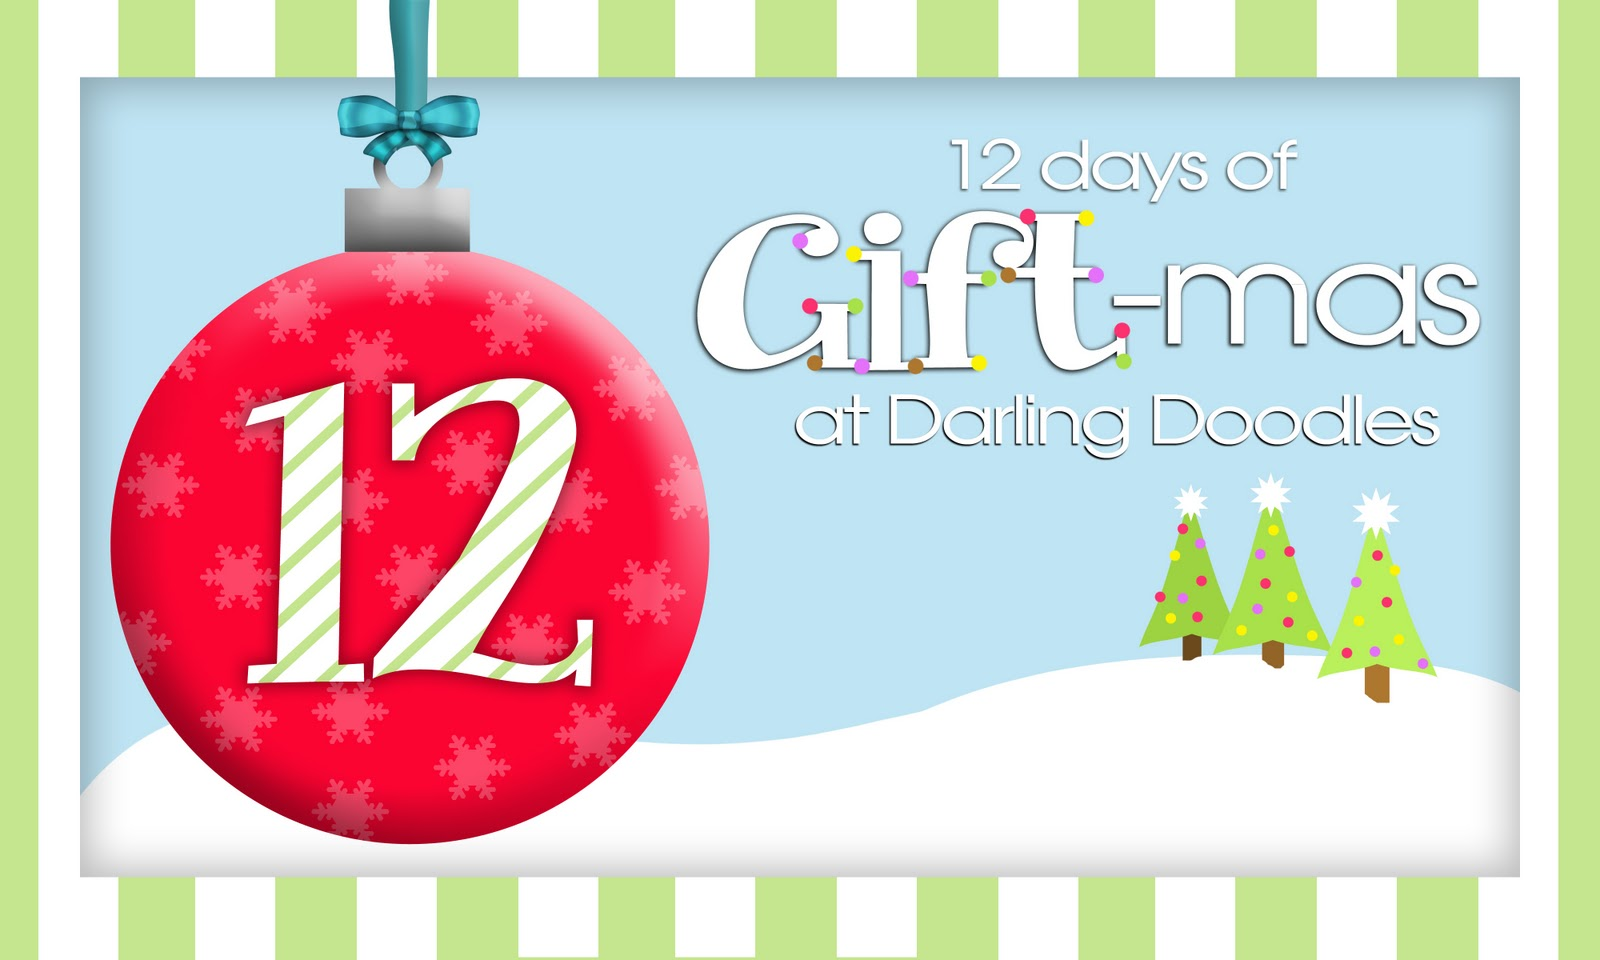 This series is going to take up the first few weeks of December so I wanted to make sure to get a few things out before they start.  sc 1 st  Darling Doodles & Christmas Lunch Box Notes and... - Darling Doodles Aboutintivar.Com